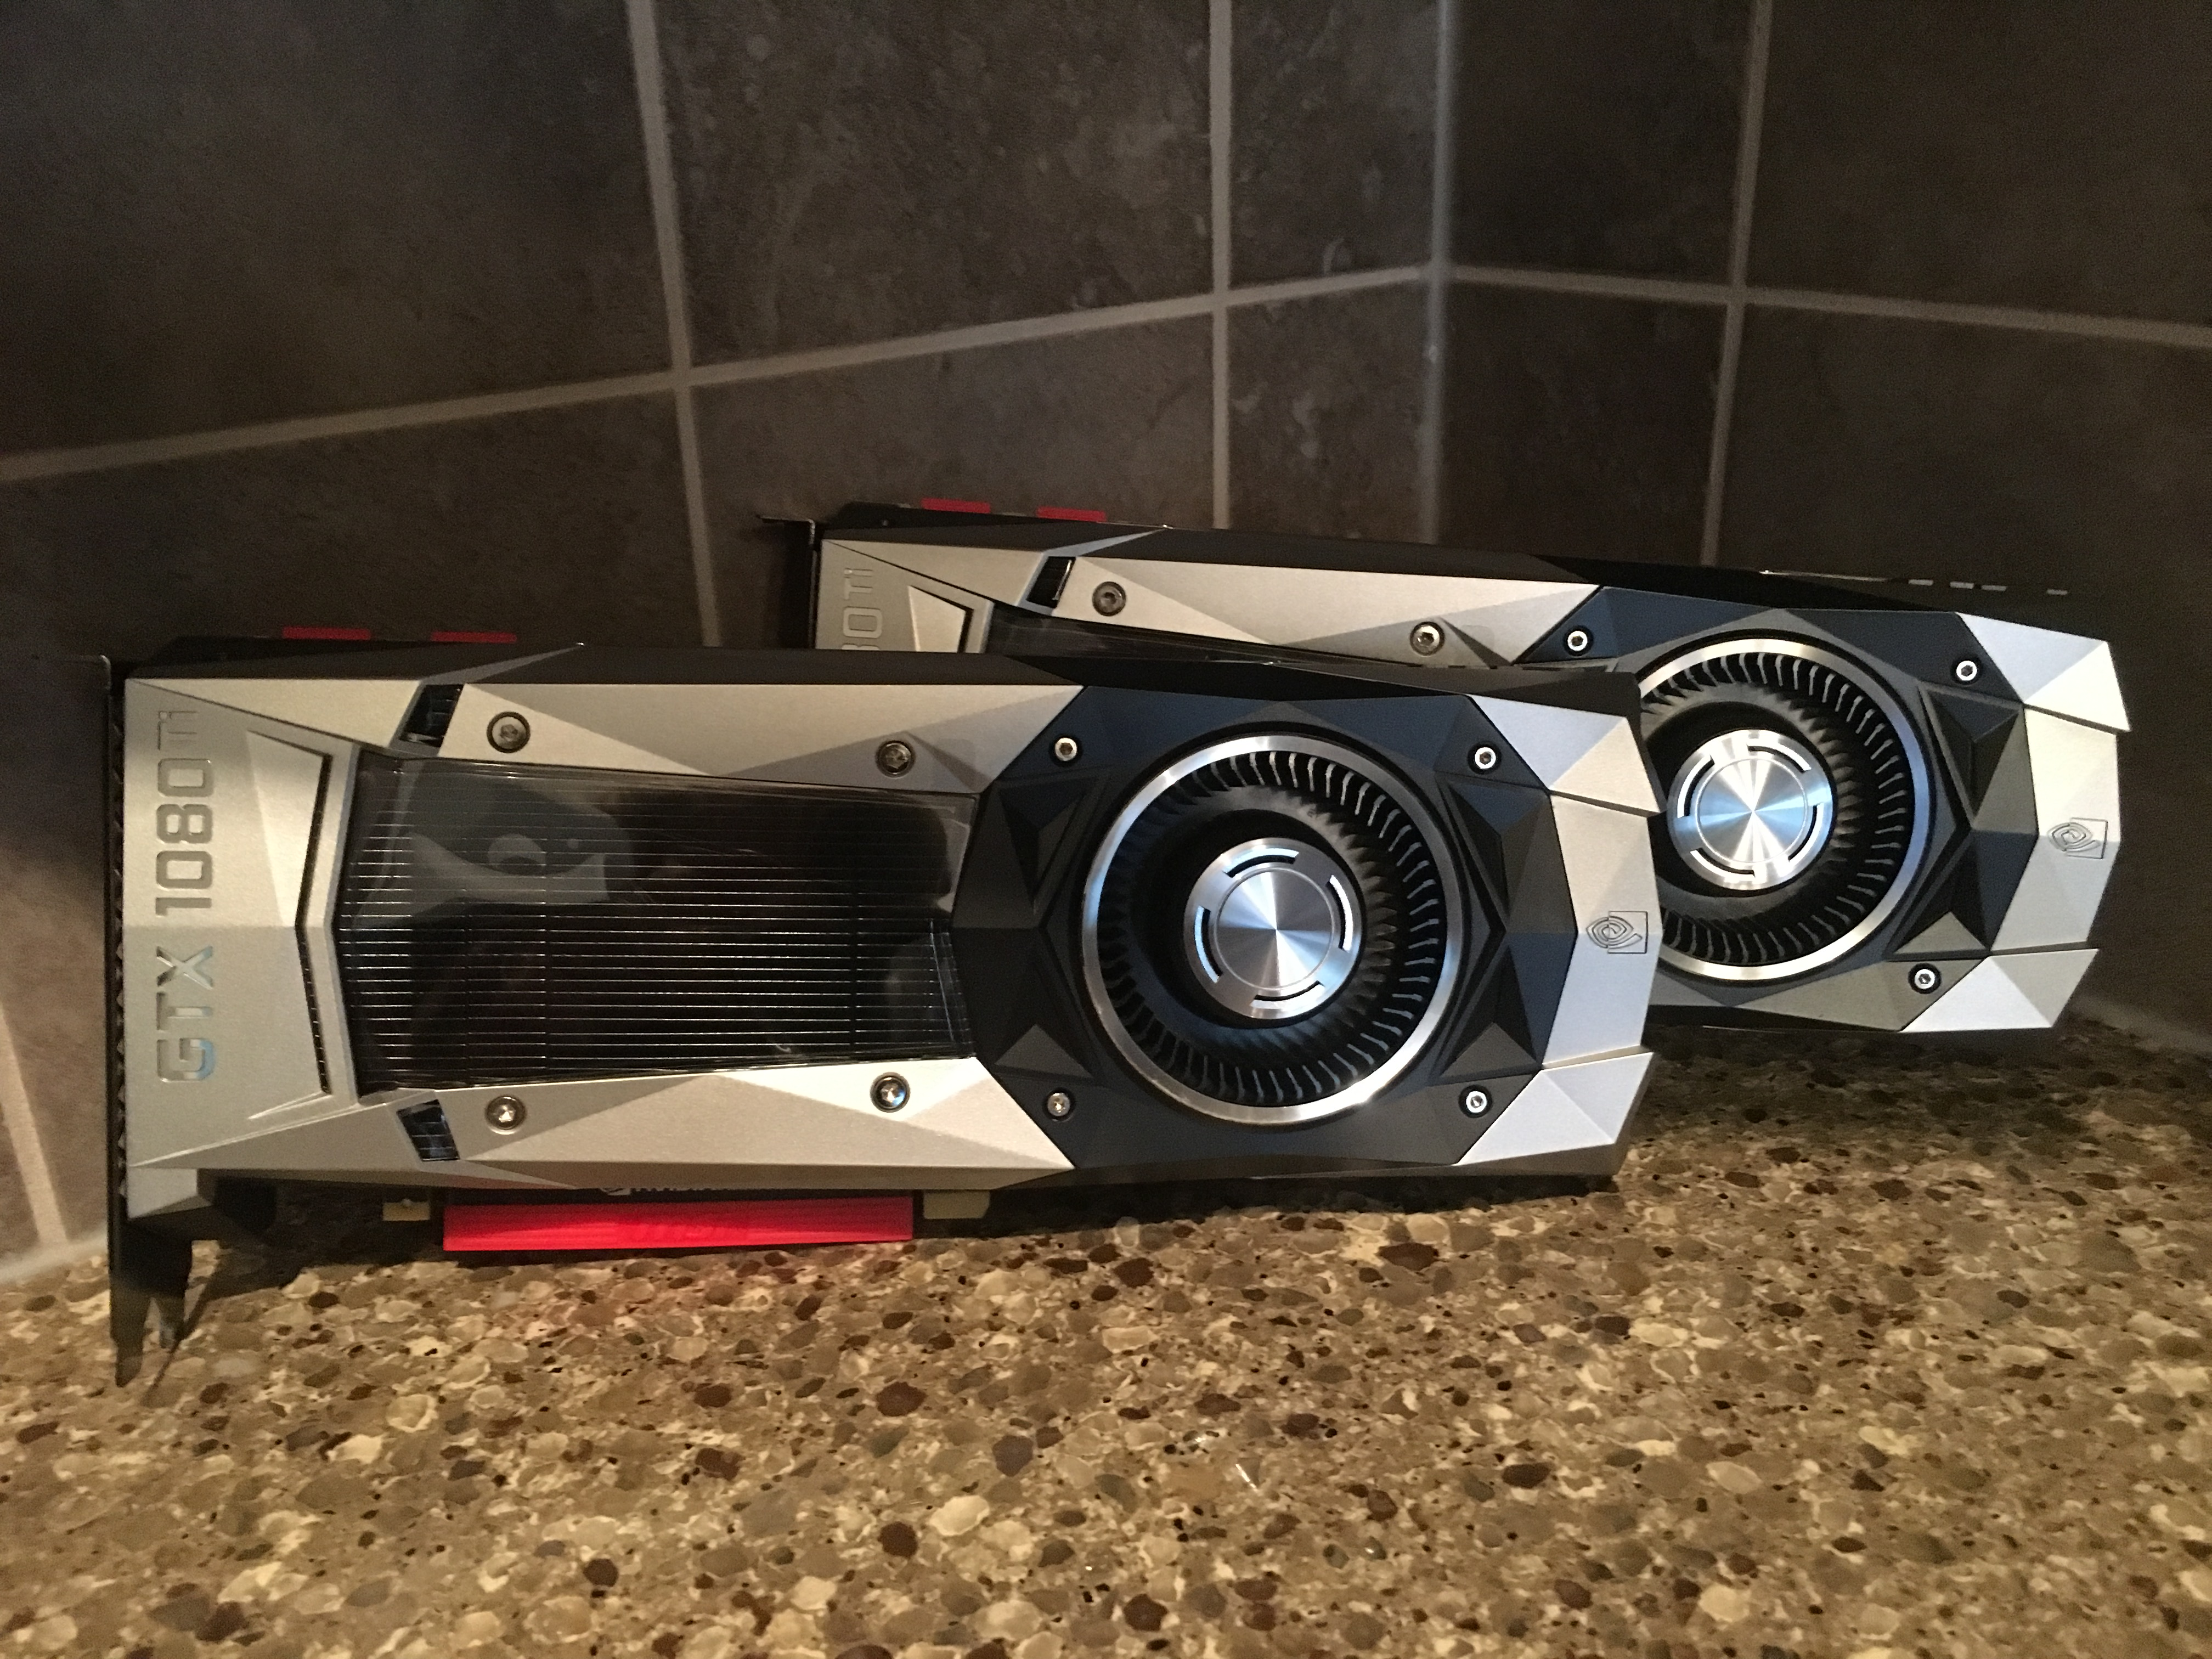 Geforce 1080 Ti Founders Edition